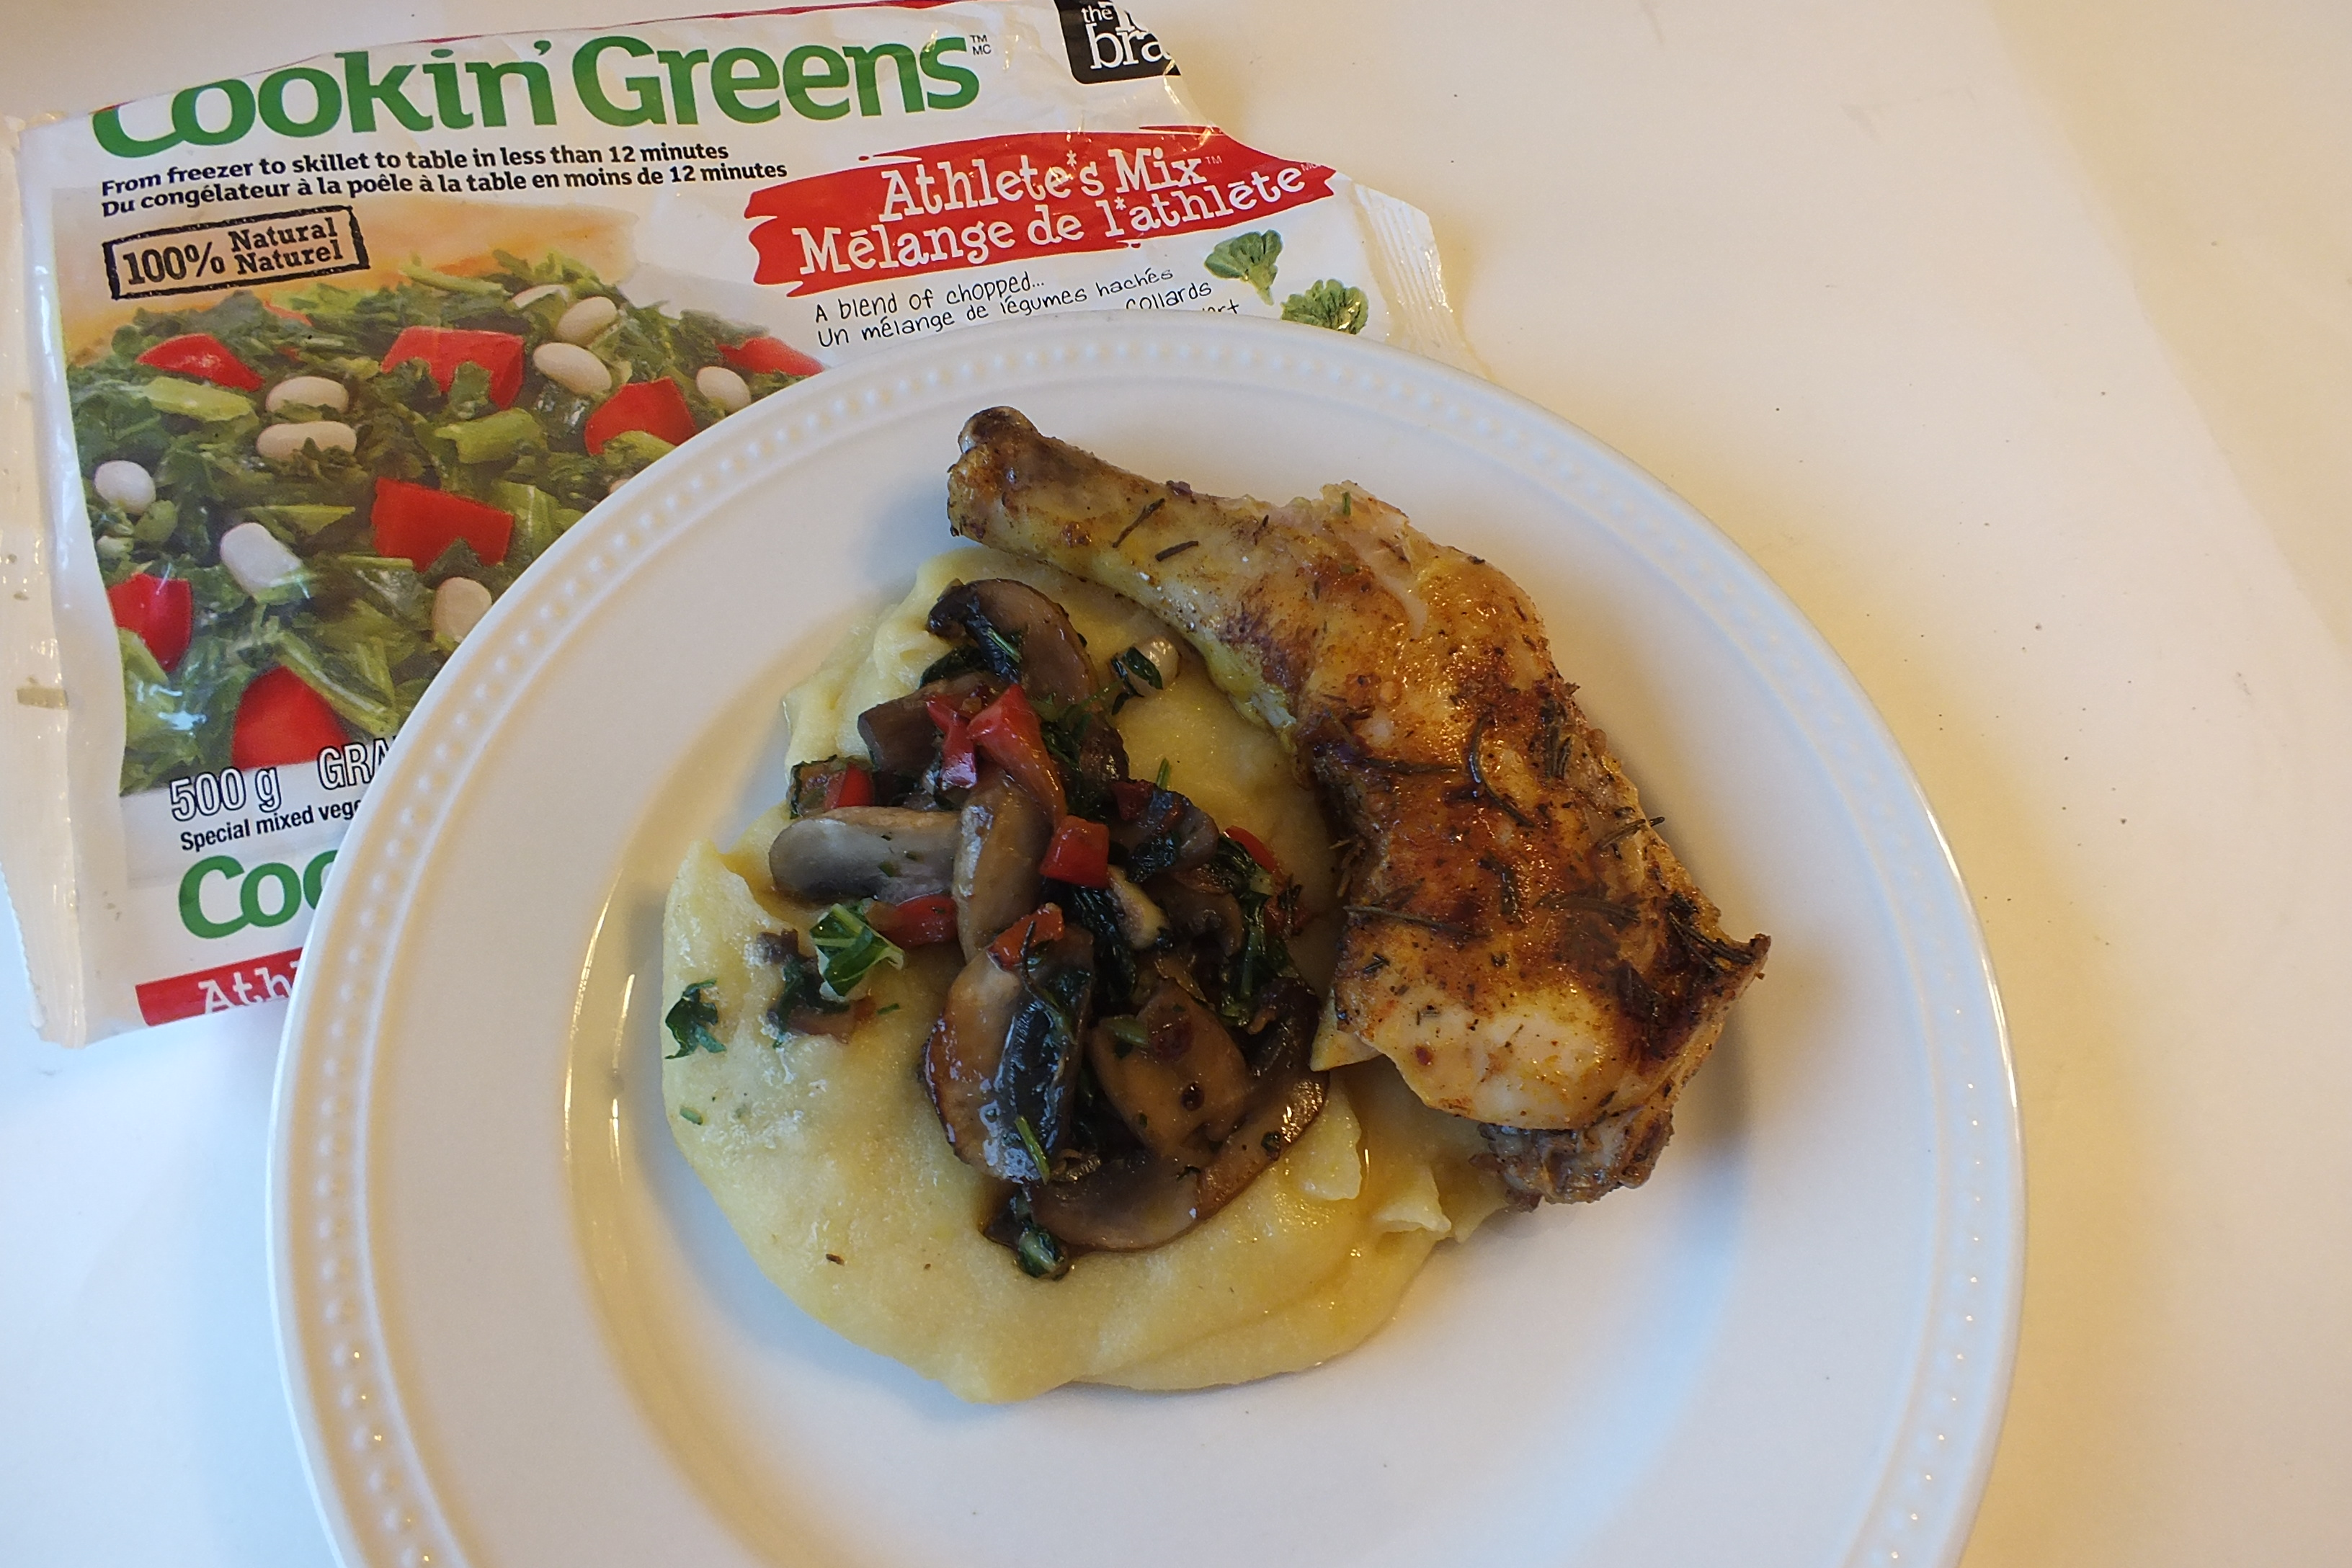 chicken-polenta-mushrooms-greens-016-3.jpg